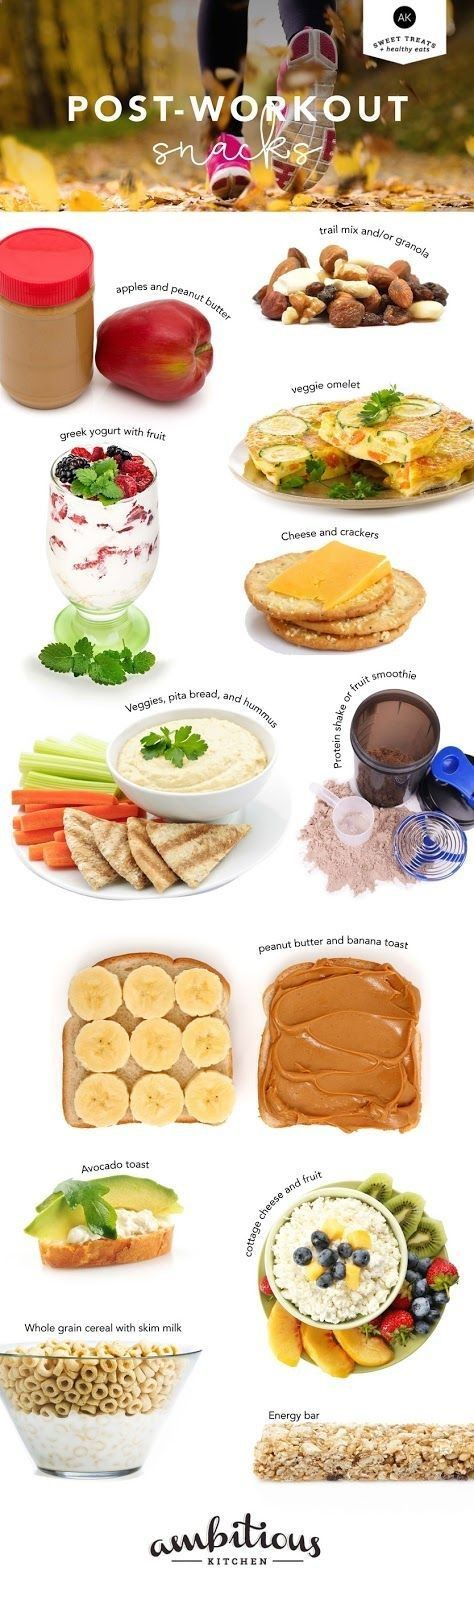 Easy ways to lose weight in 1 day